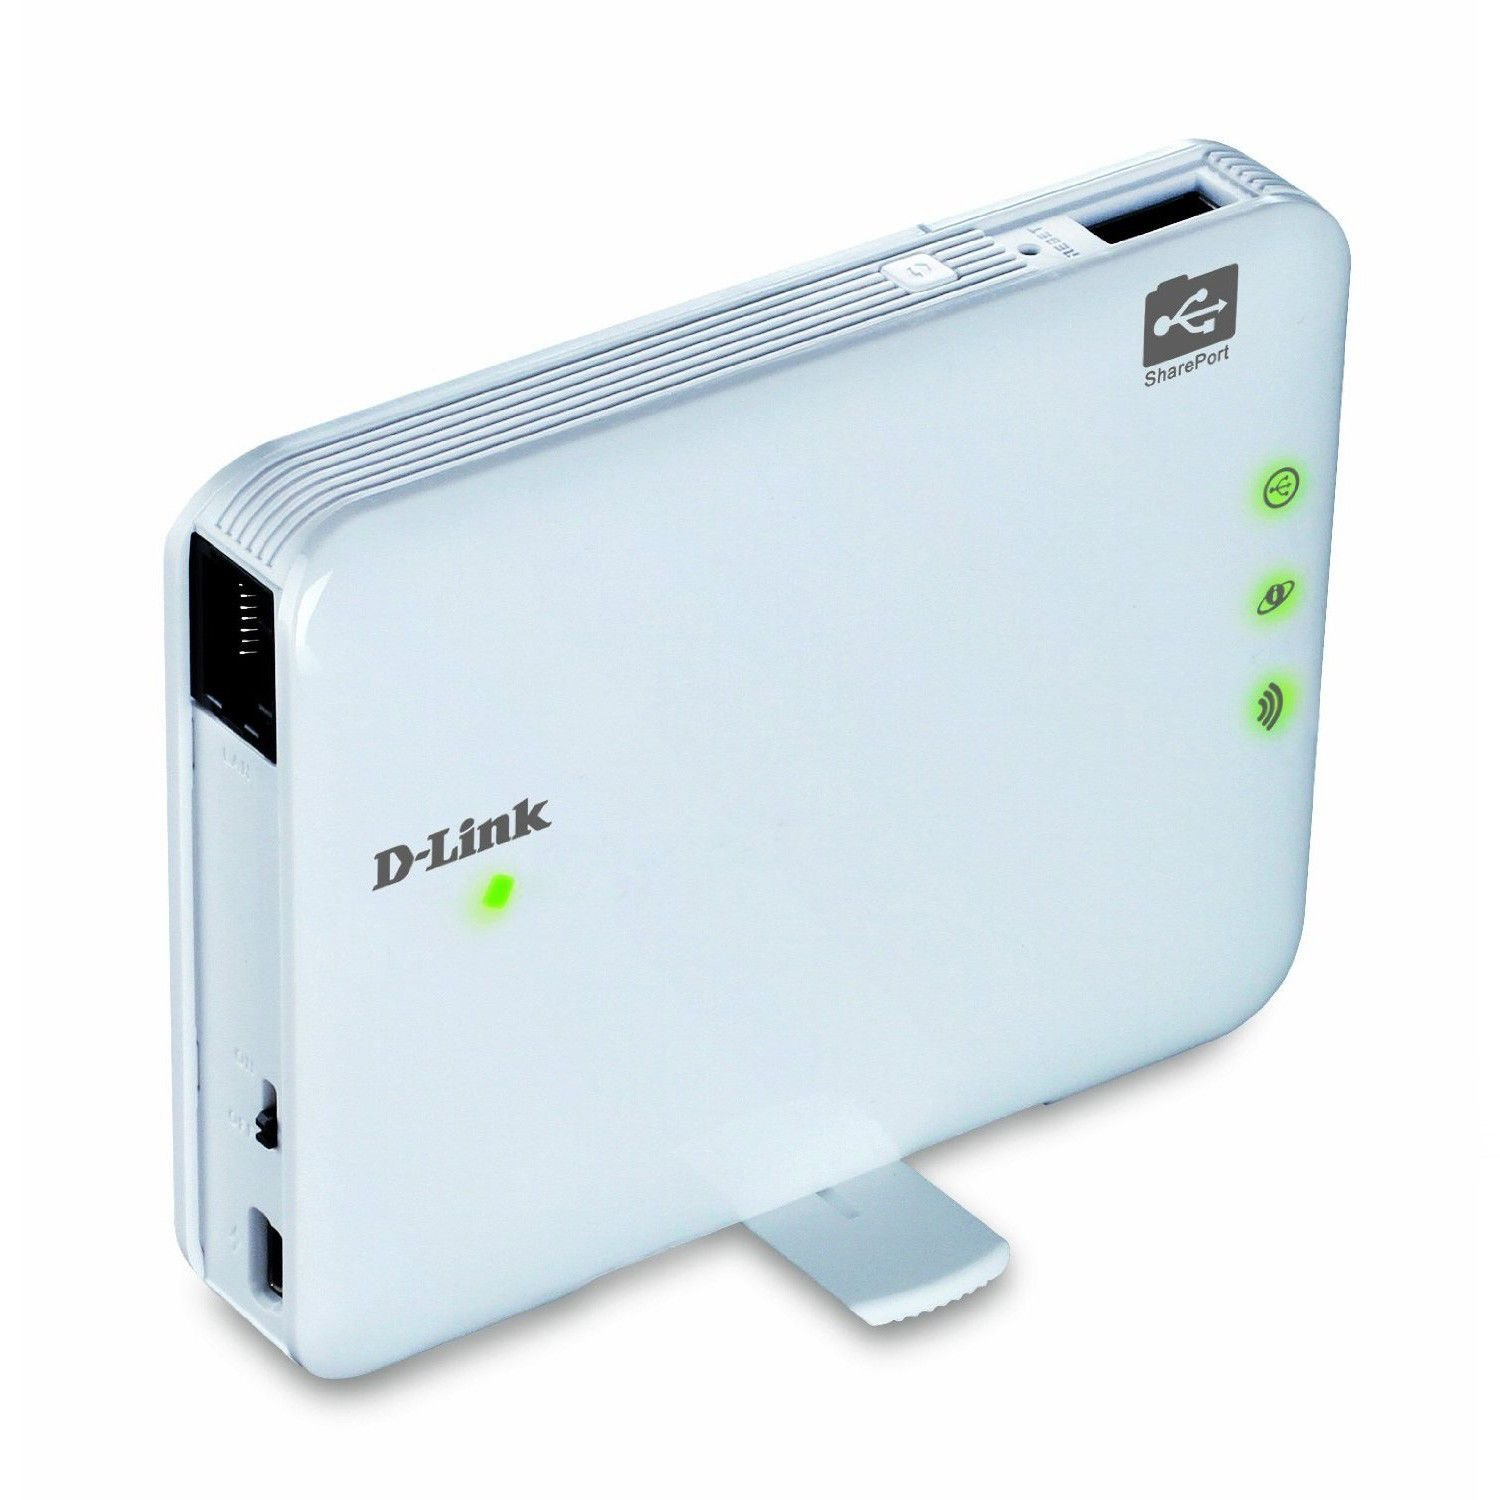 D Link DIR 506L  Portable Wireless N150 Router Chargers